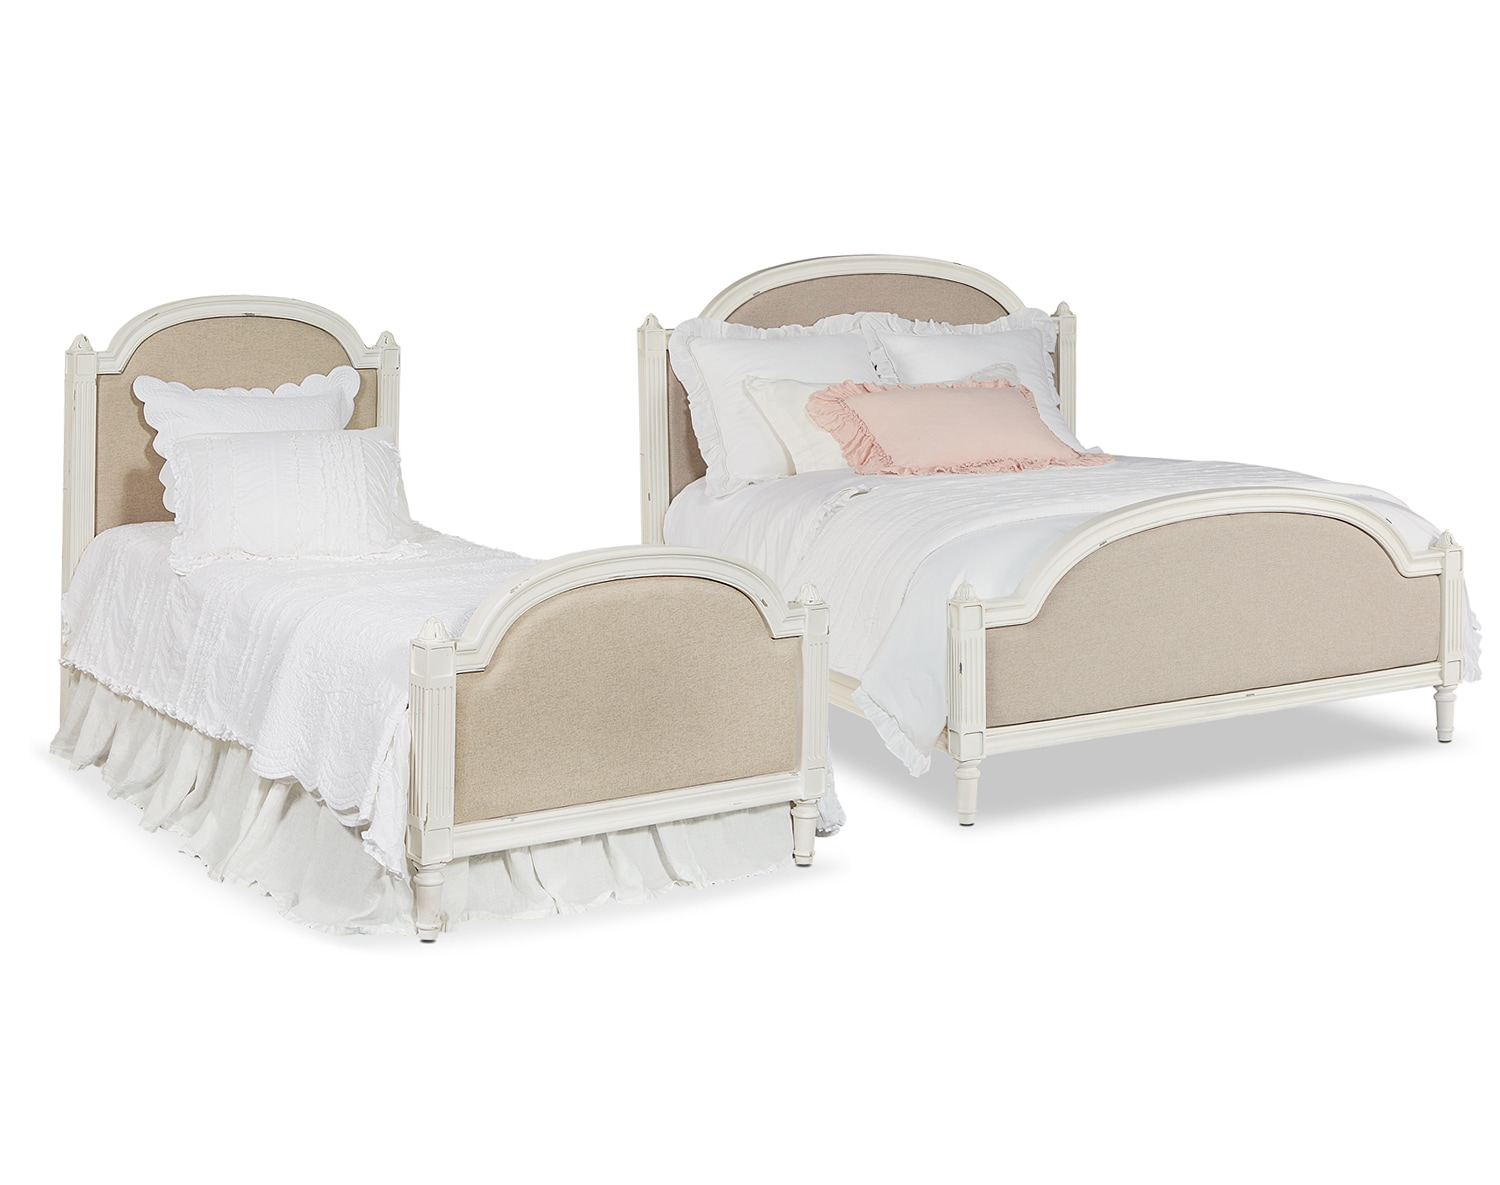 The French-Inspired Sisters Bedroom Collection